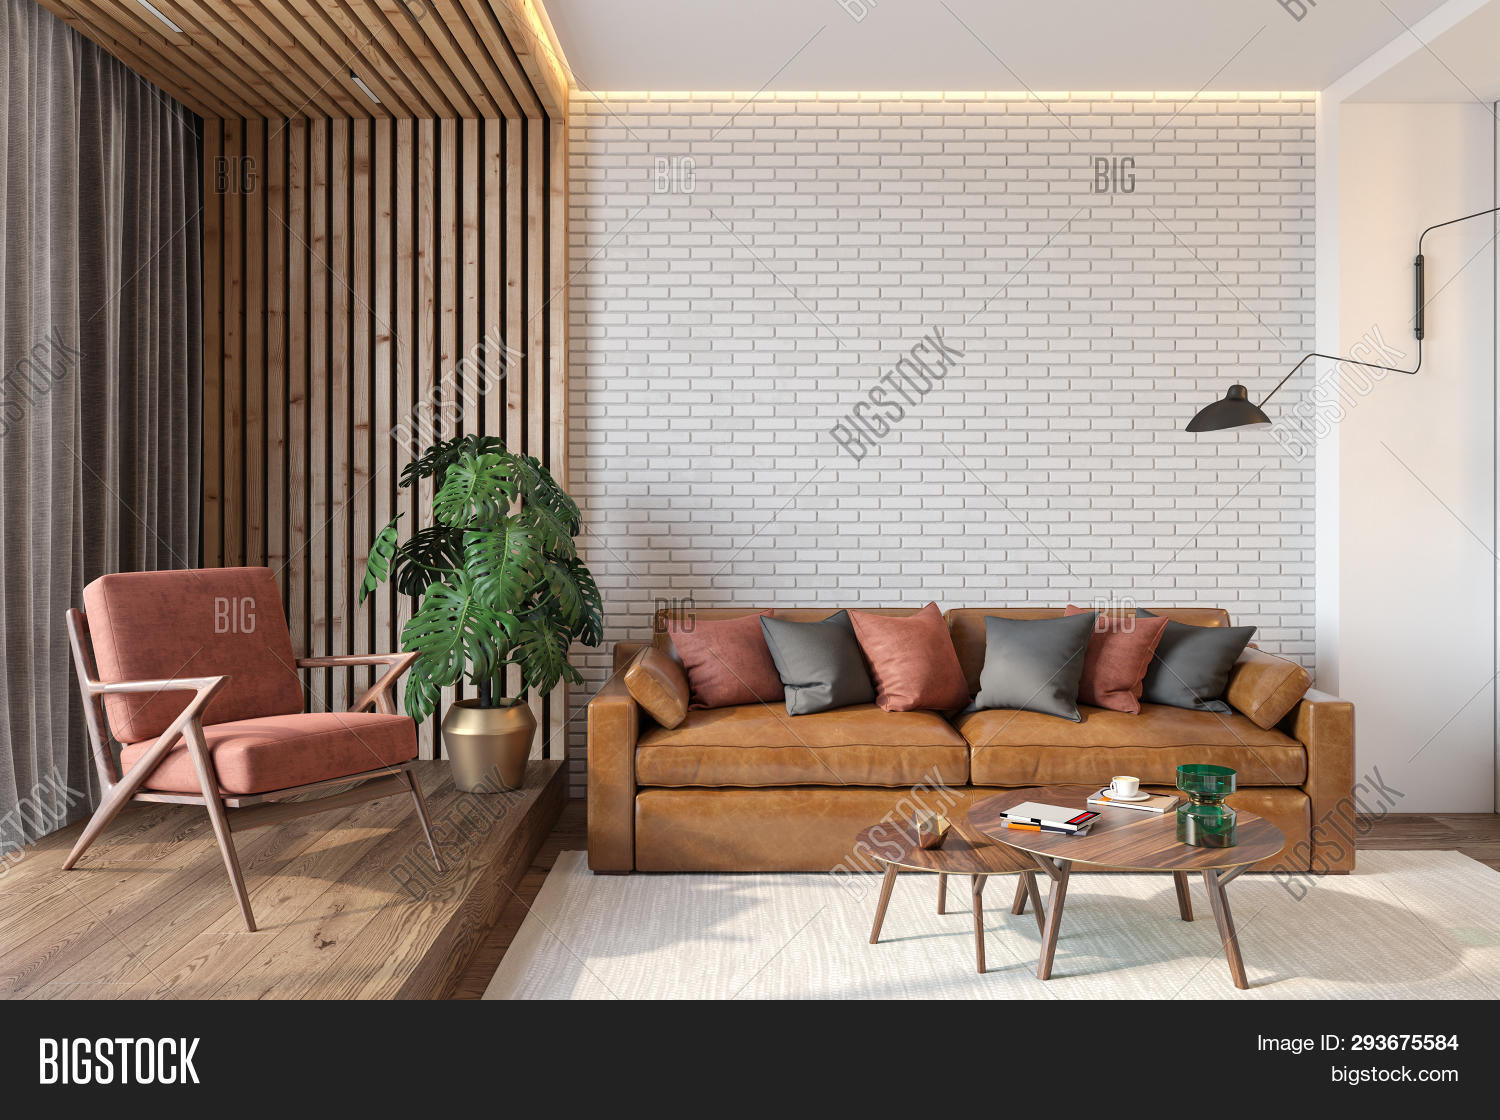 Modern Living Room Image & Photo (Free Trial) | Bigstock